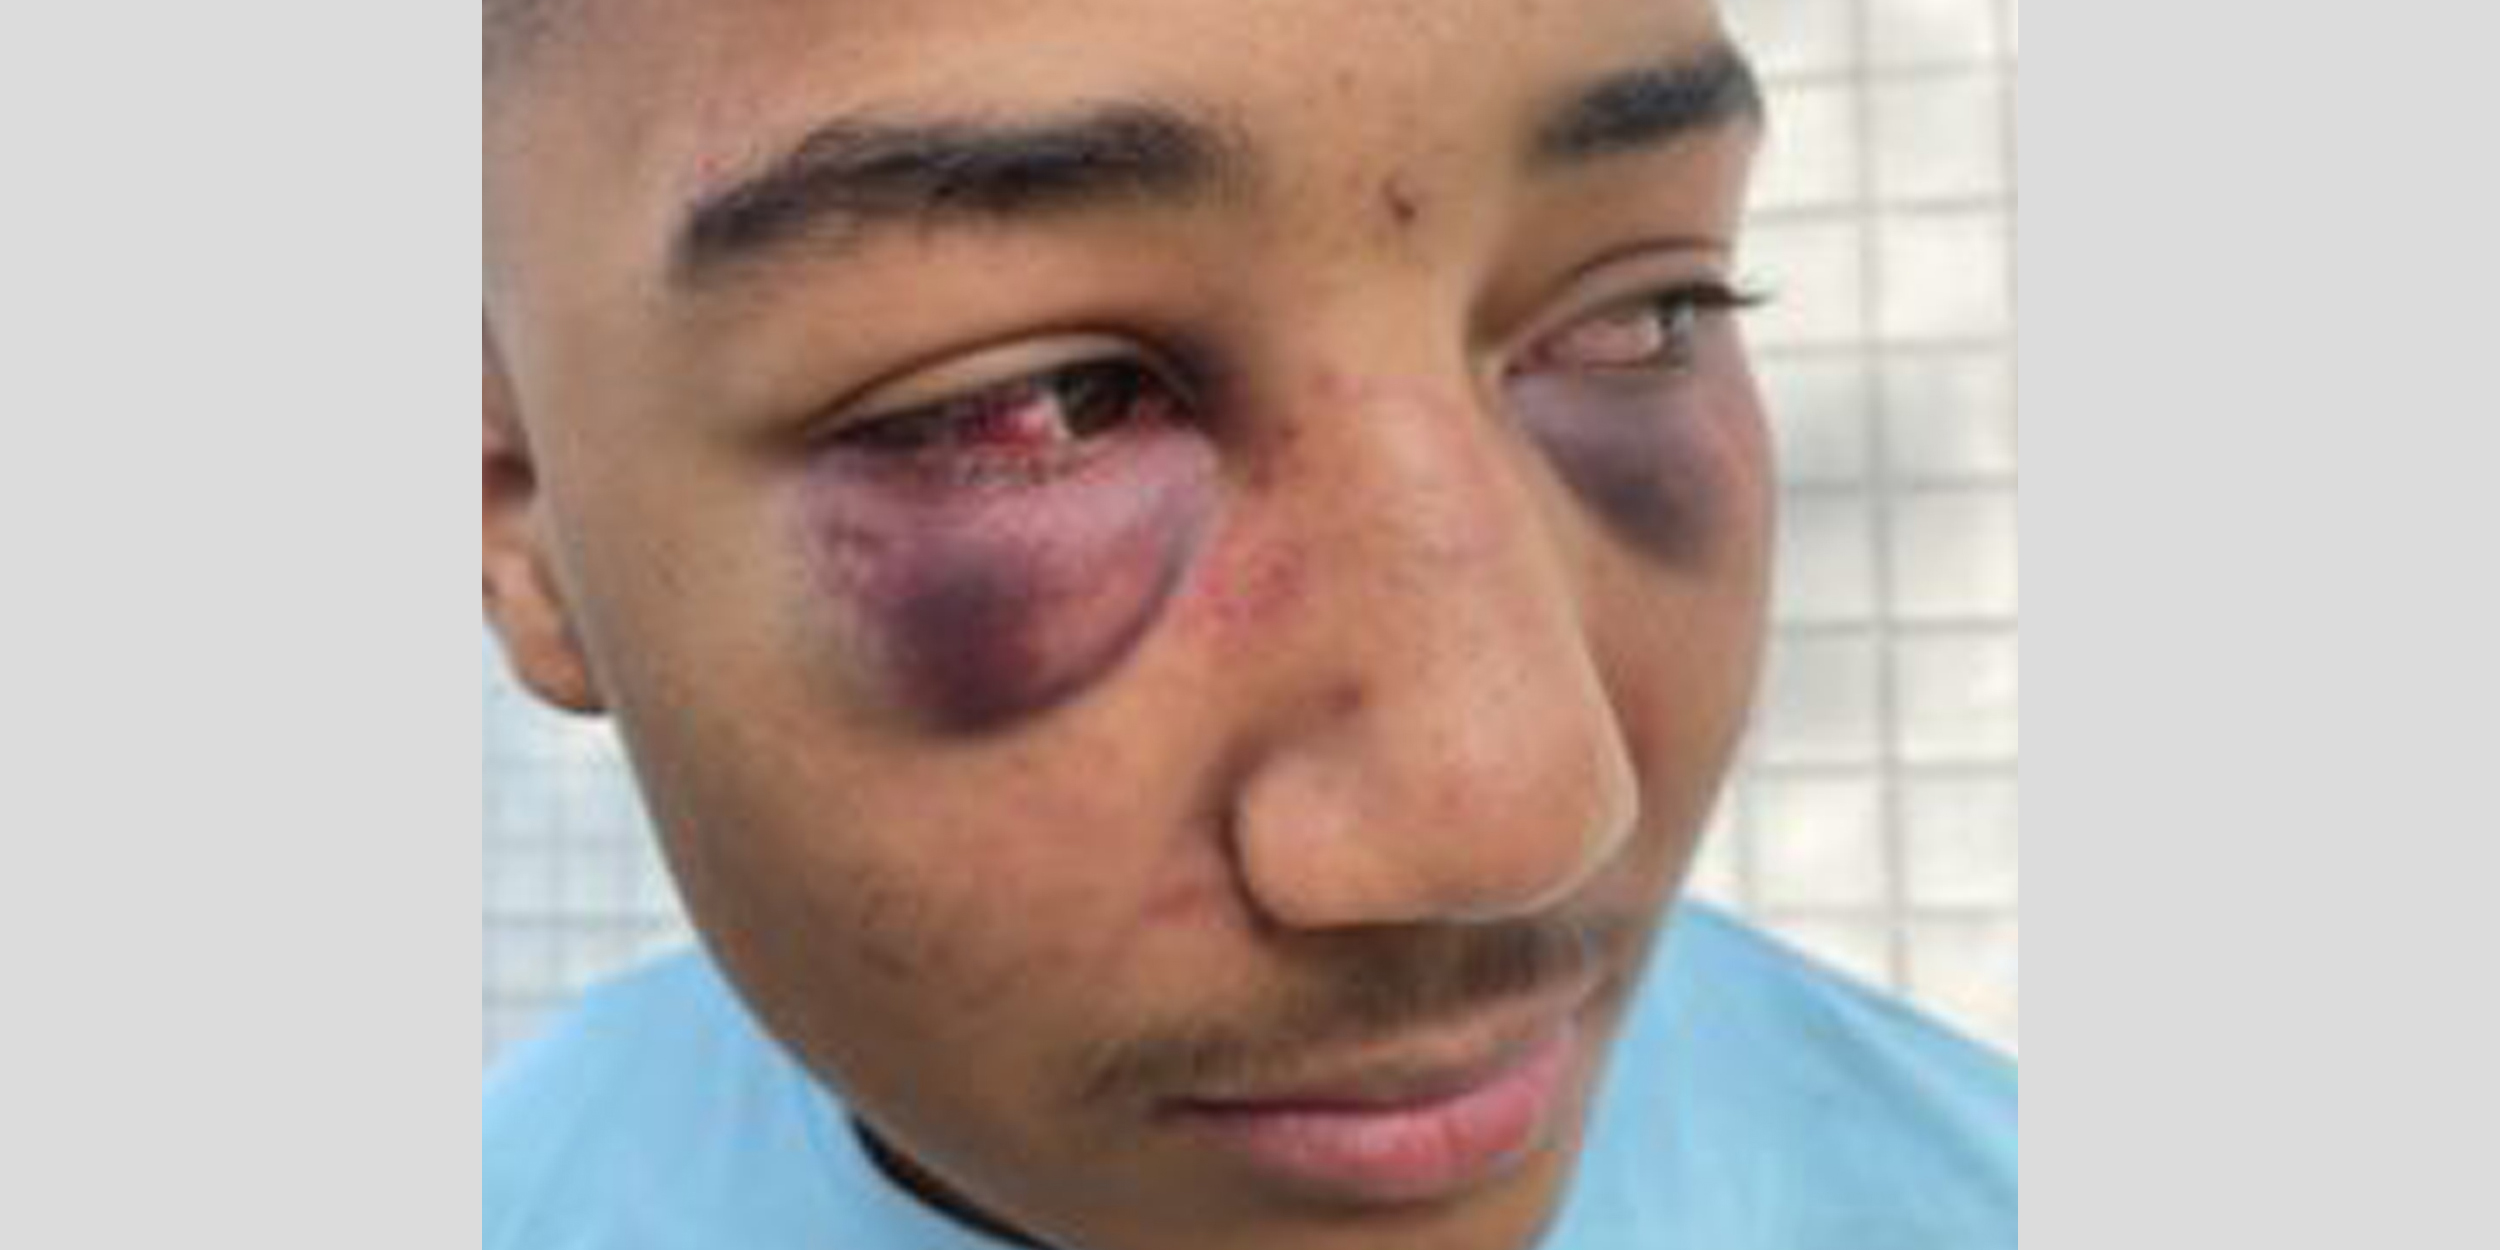 Former California officers indicted for allegedly beating Black teen